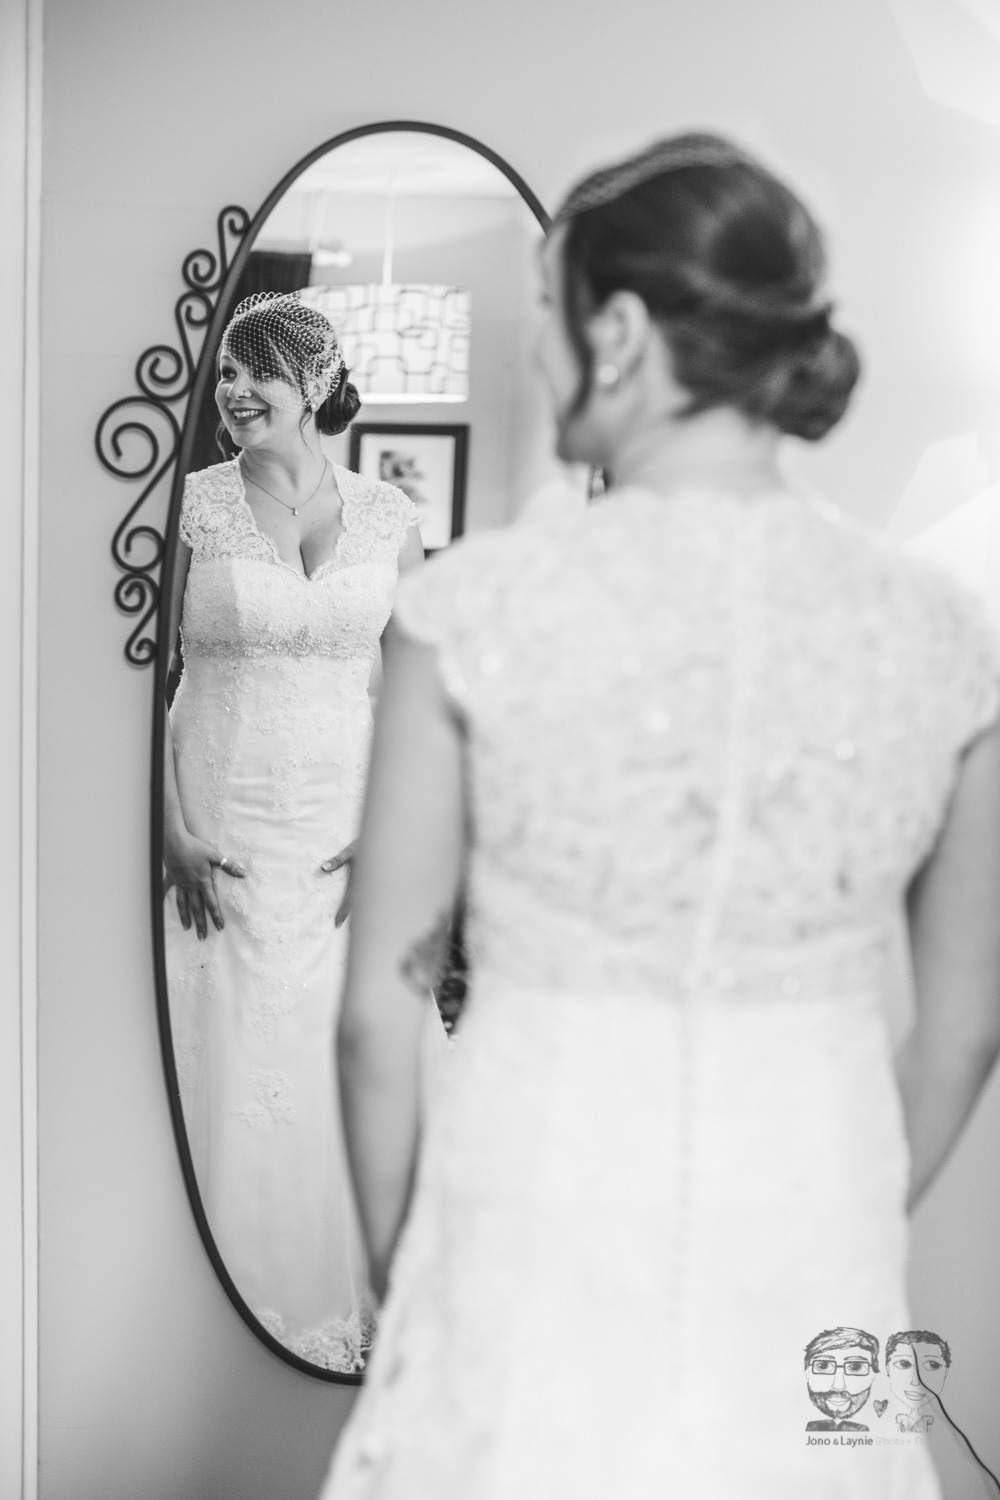 Brantford Wedding Photographer-Jono & Laynie028.jpg